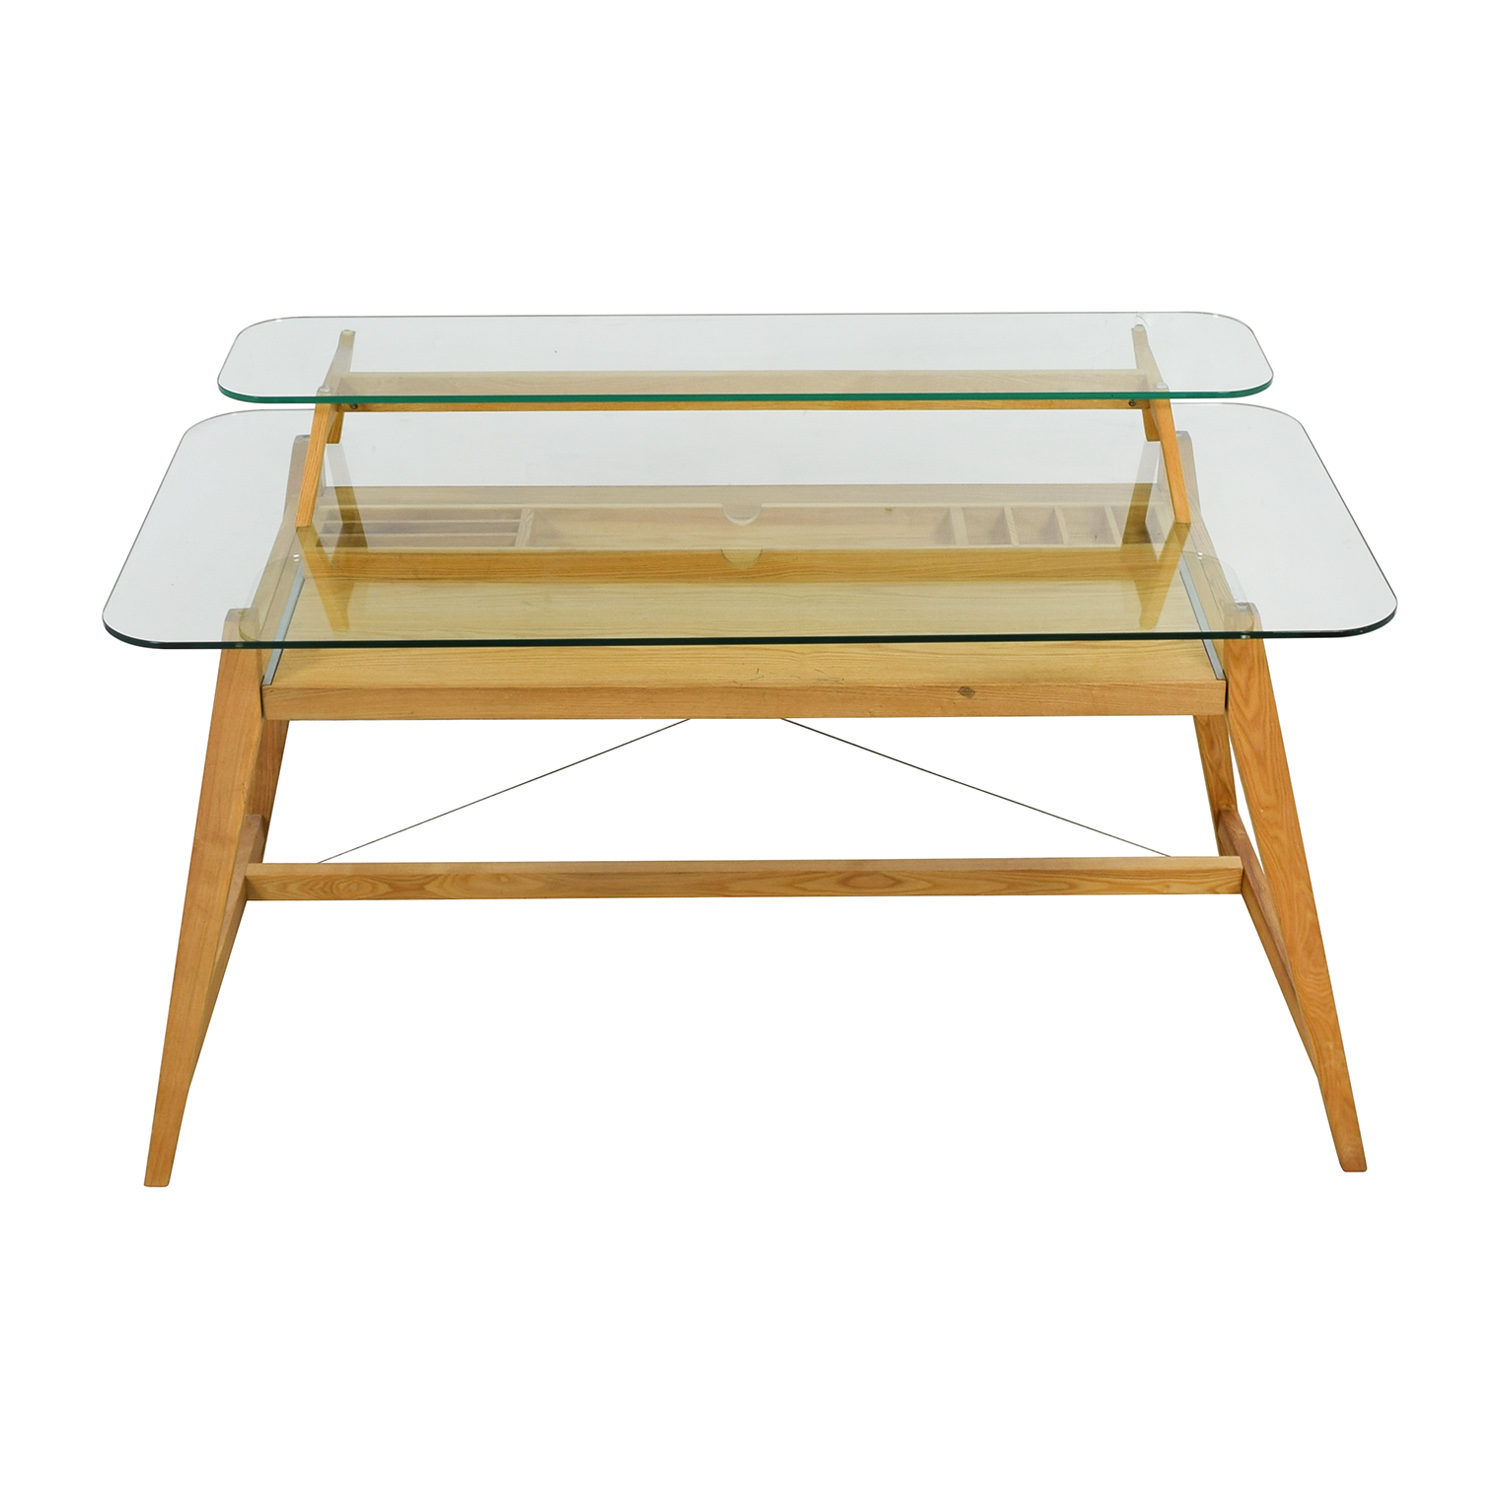 AG Merch AG Merch Natural Two-Tiered Desk with Glass Top nyc